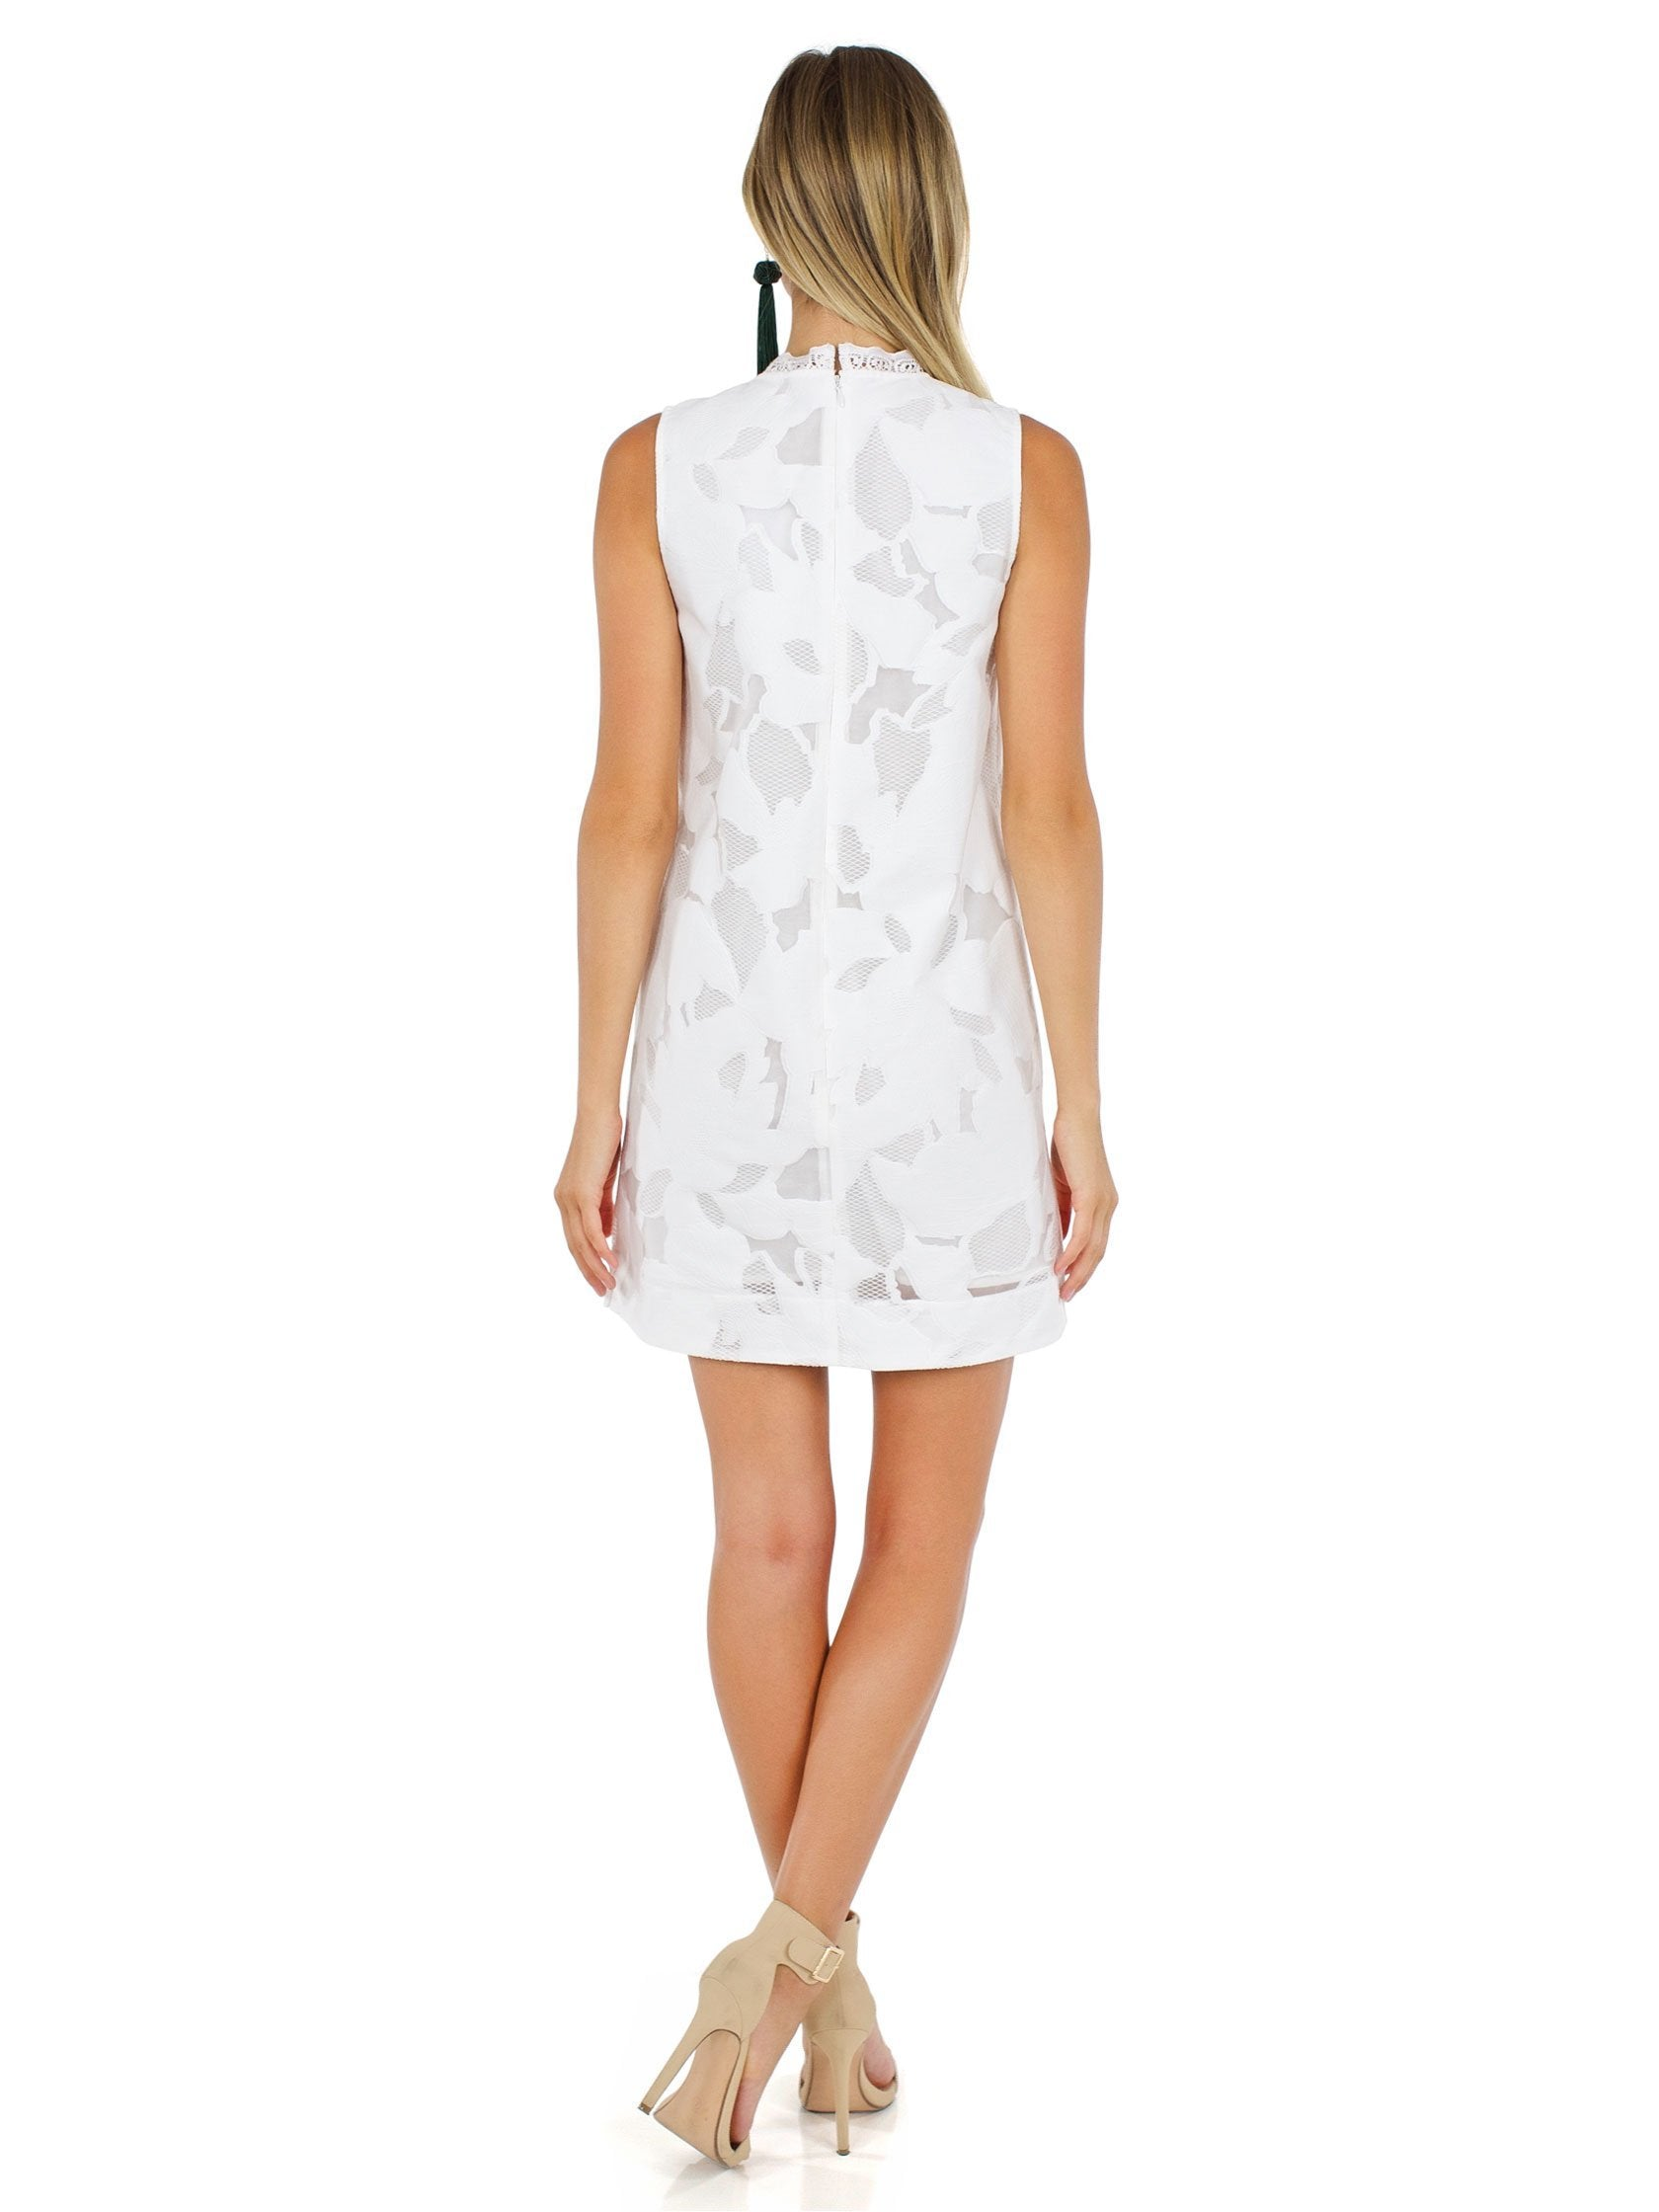 Women wearing a dress rental from French Connection called Deka Lace Shift Dress